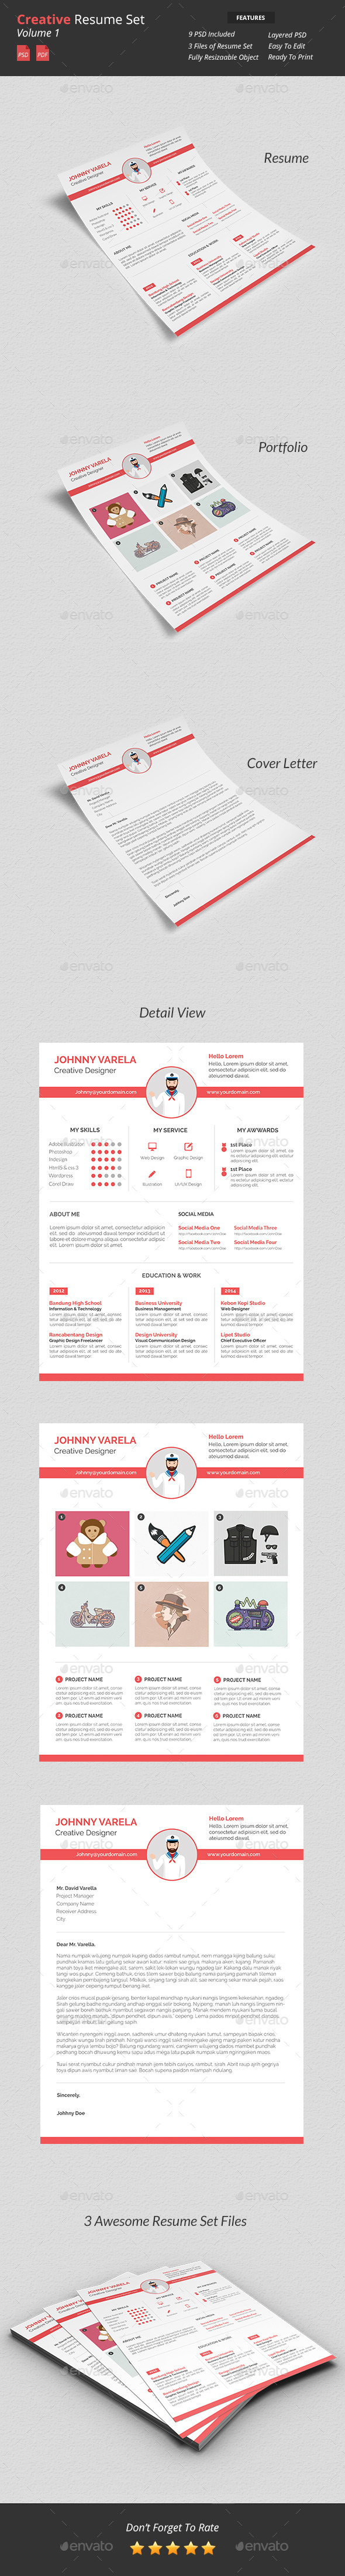 Creative Resume Set v1 - Resumes Stationery